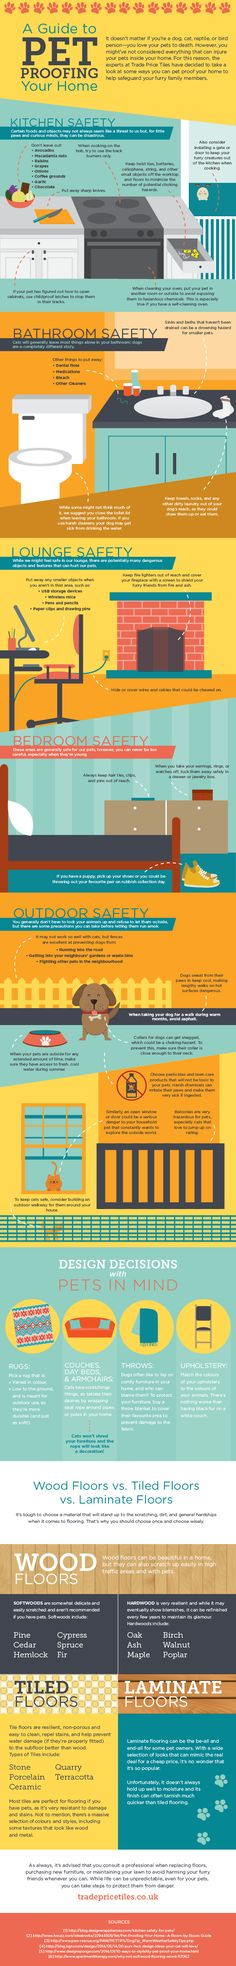 Pet Proofing Your Home: Infographic.   #petproofhome #care #pets #cats #kittens #dogs #puppies #safety #home